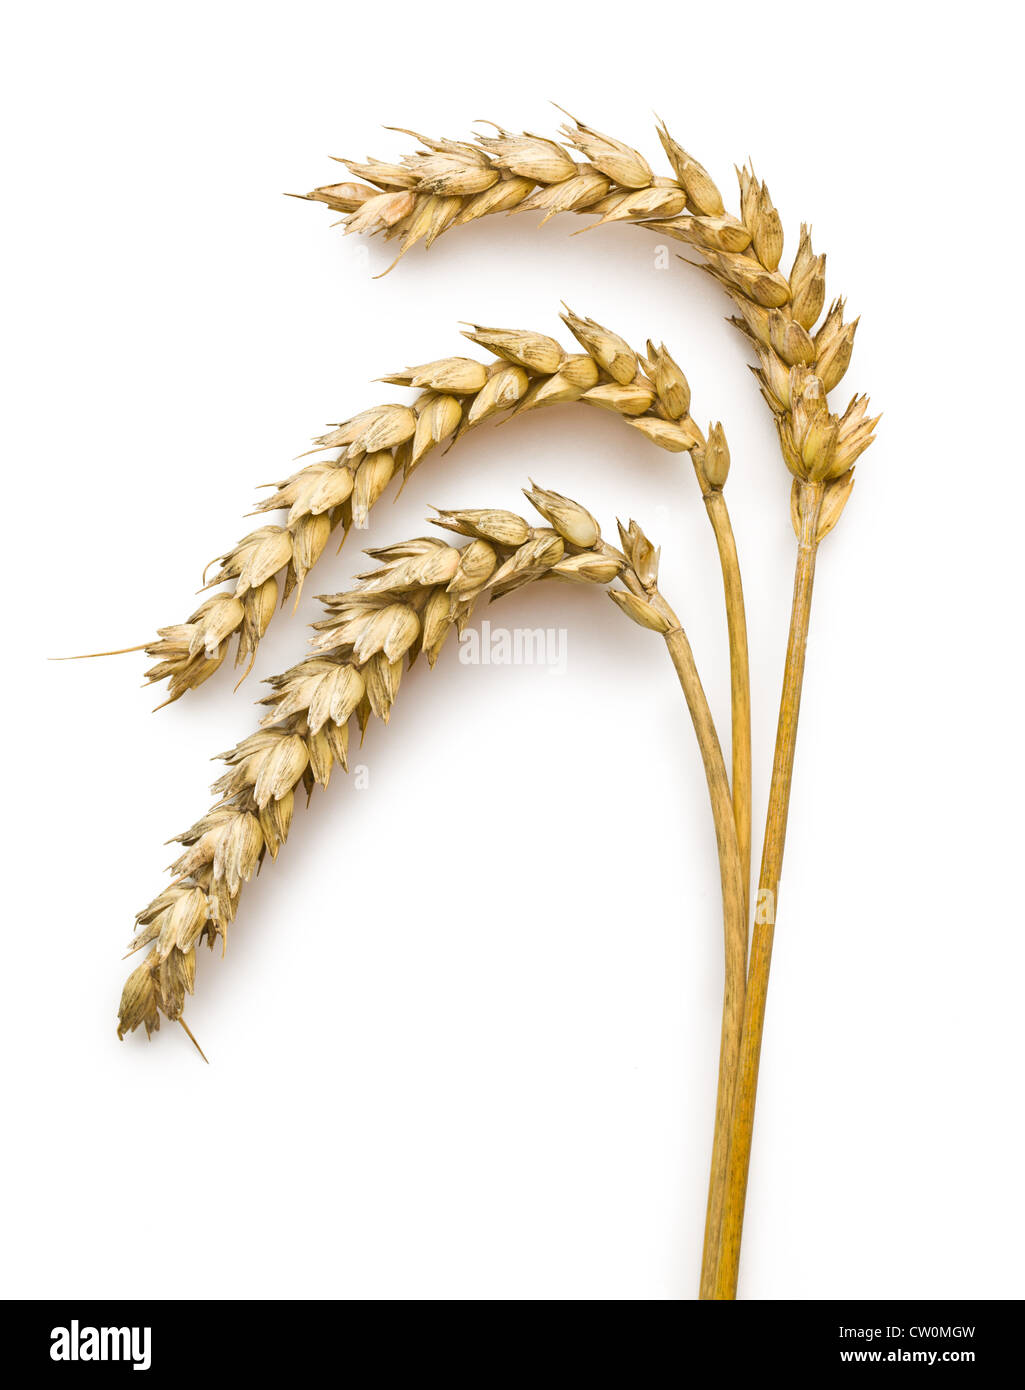 wheat ears on white background - Stock Image